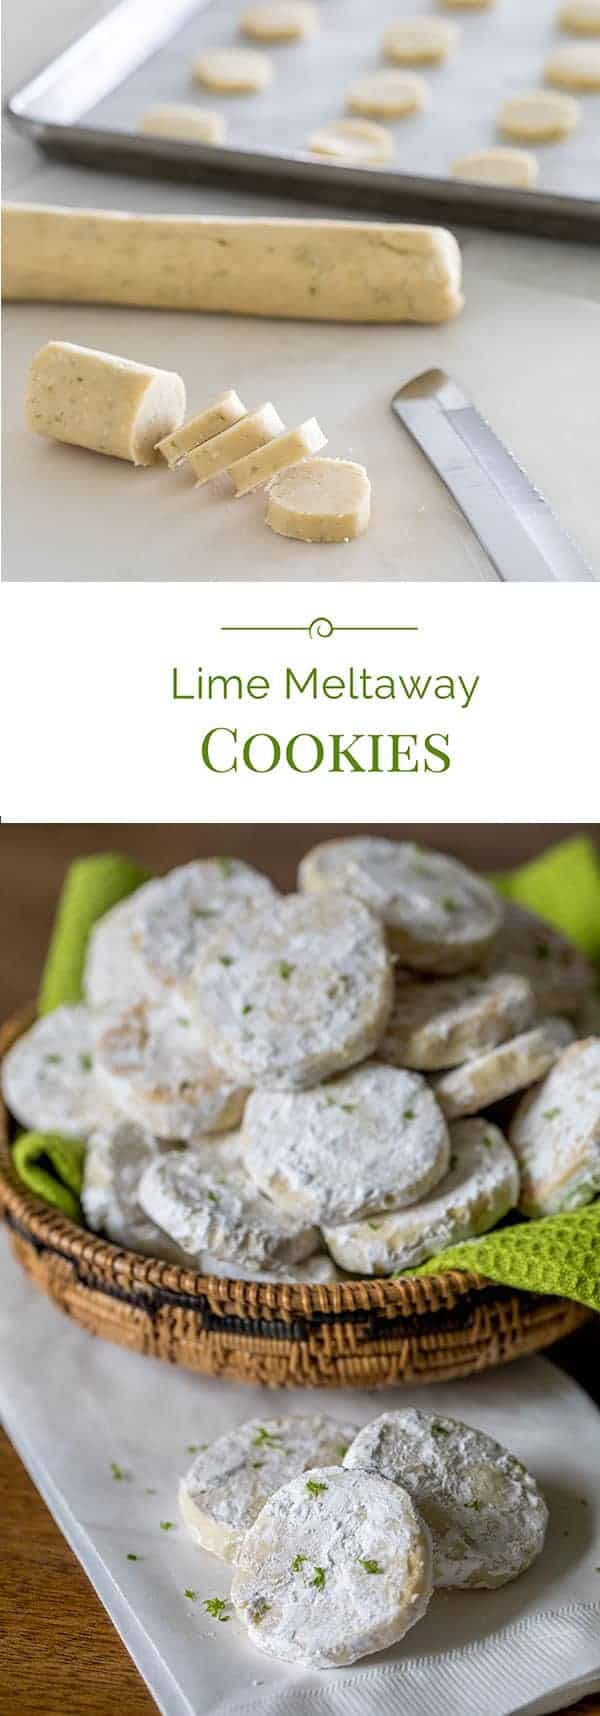 Lime-Meltaway-Cookie-Collage-Barbara-Bakes